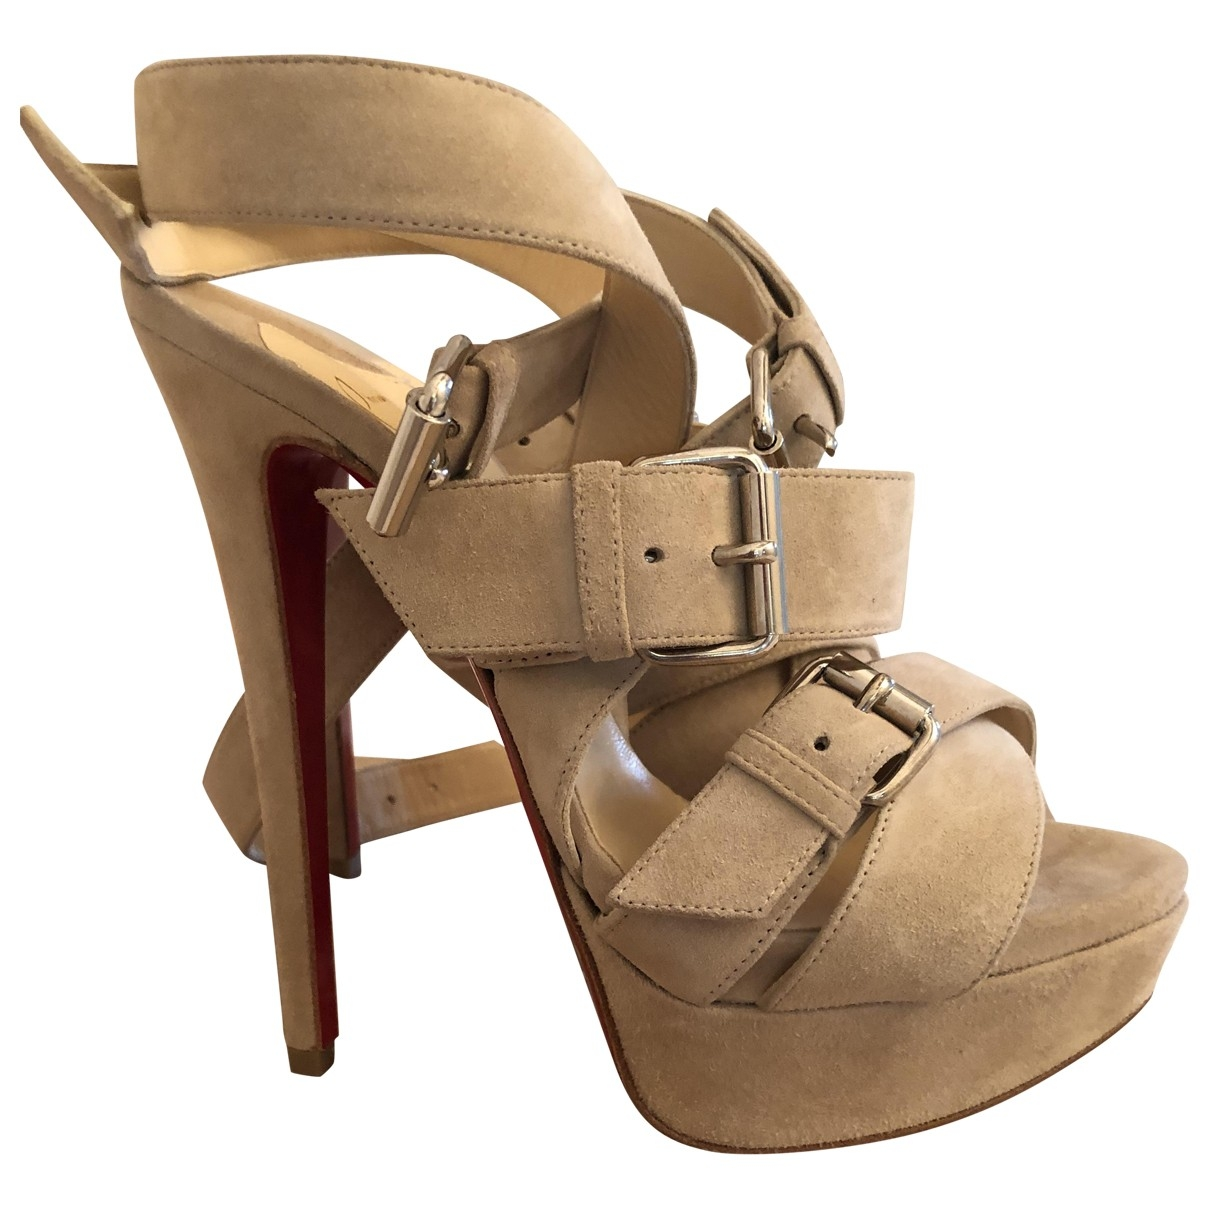 Christian Louboutin \N Beige Suede Sandals for Women 37 EU